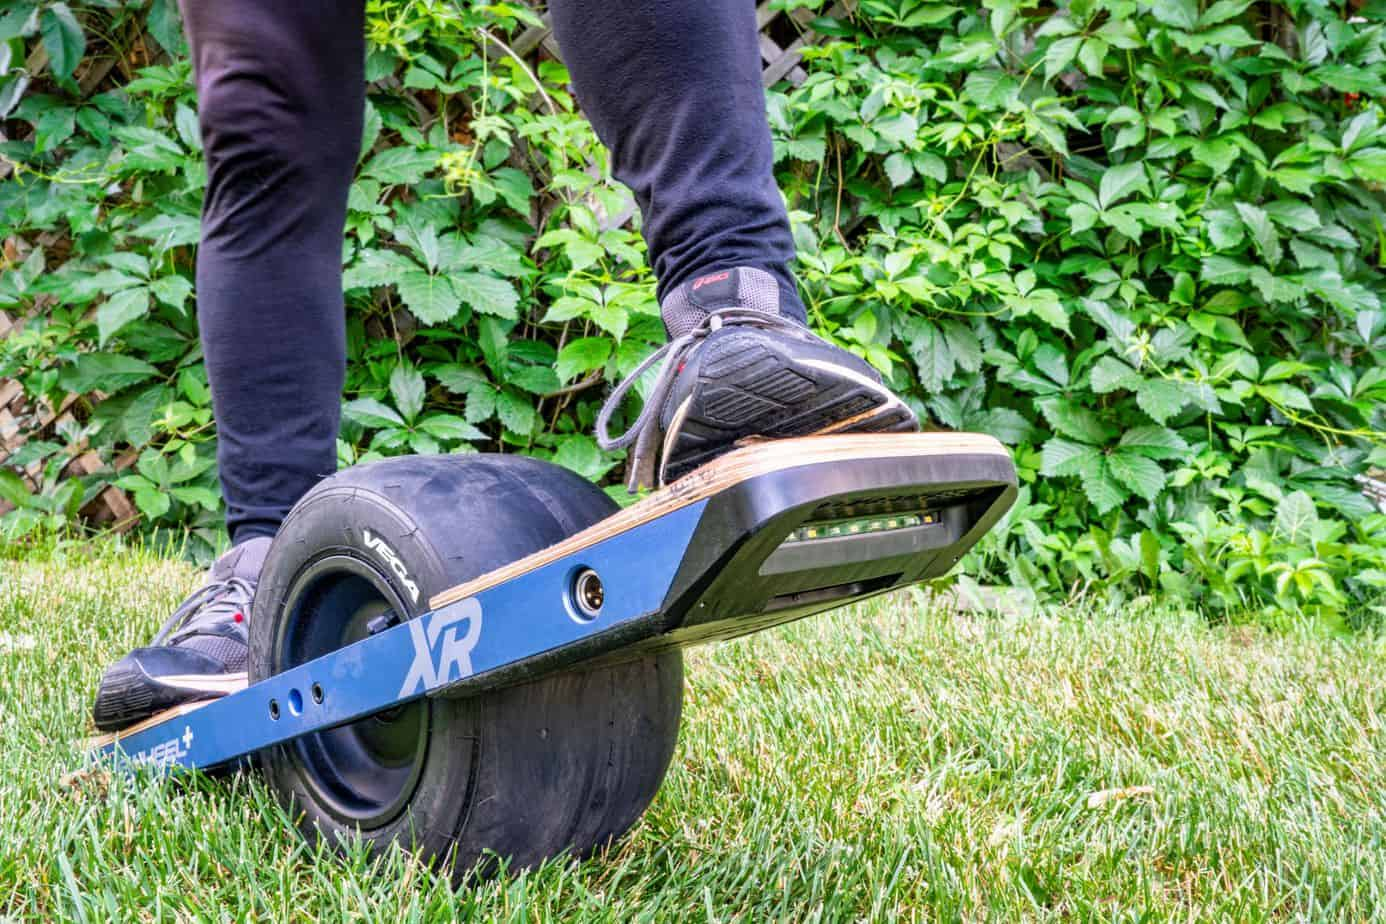 Is the Onewheel Pint Worth It?